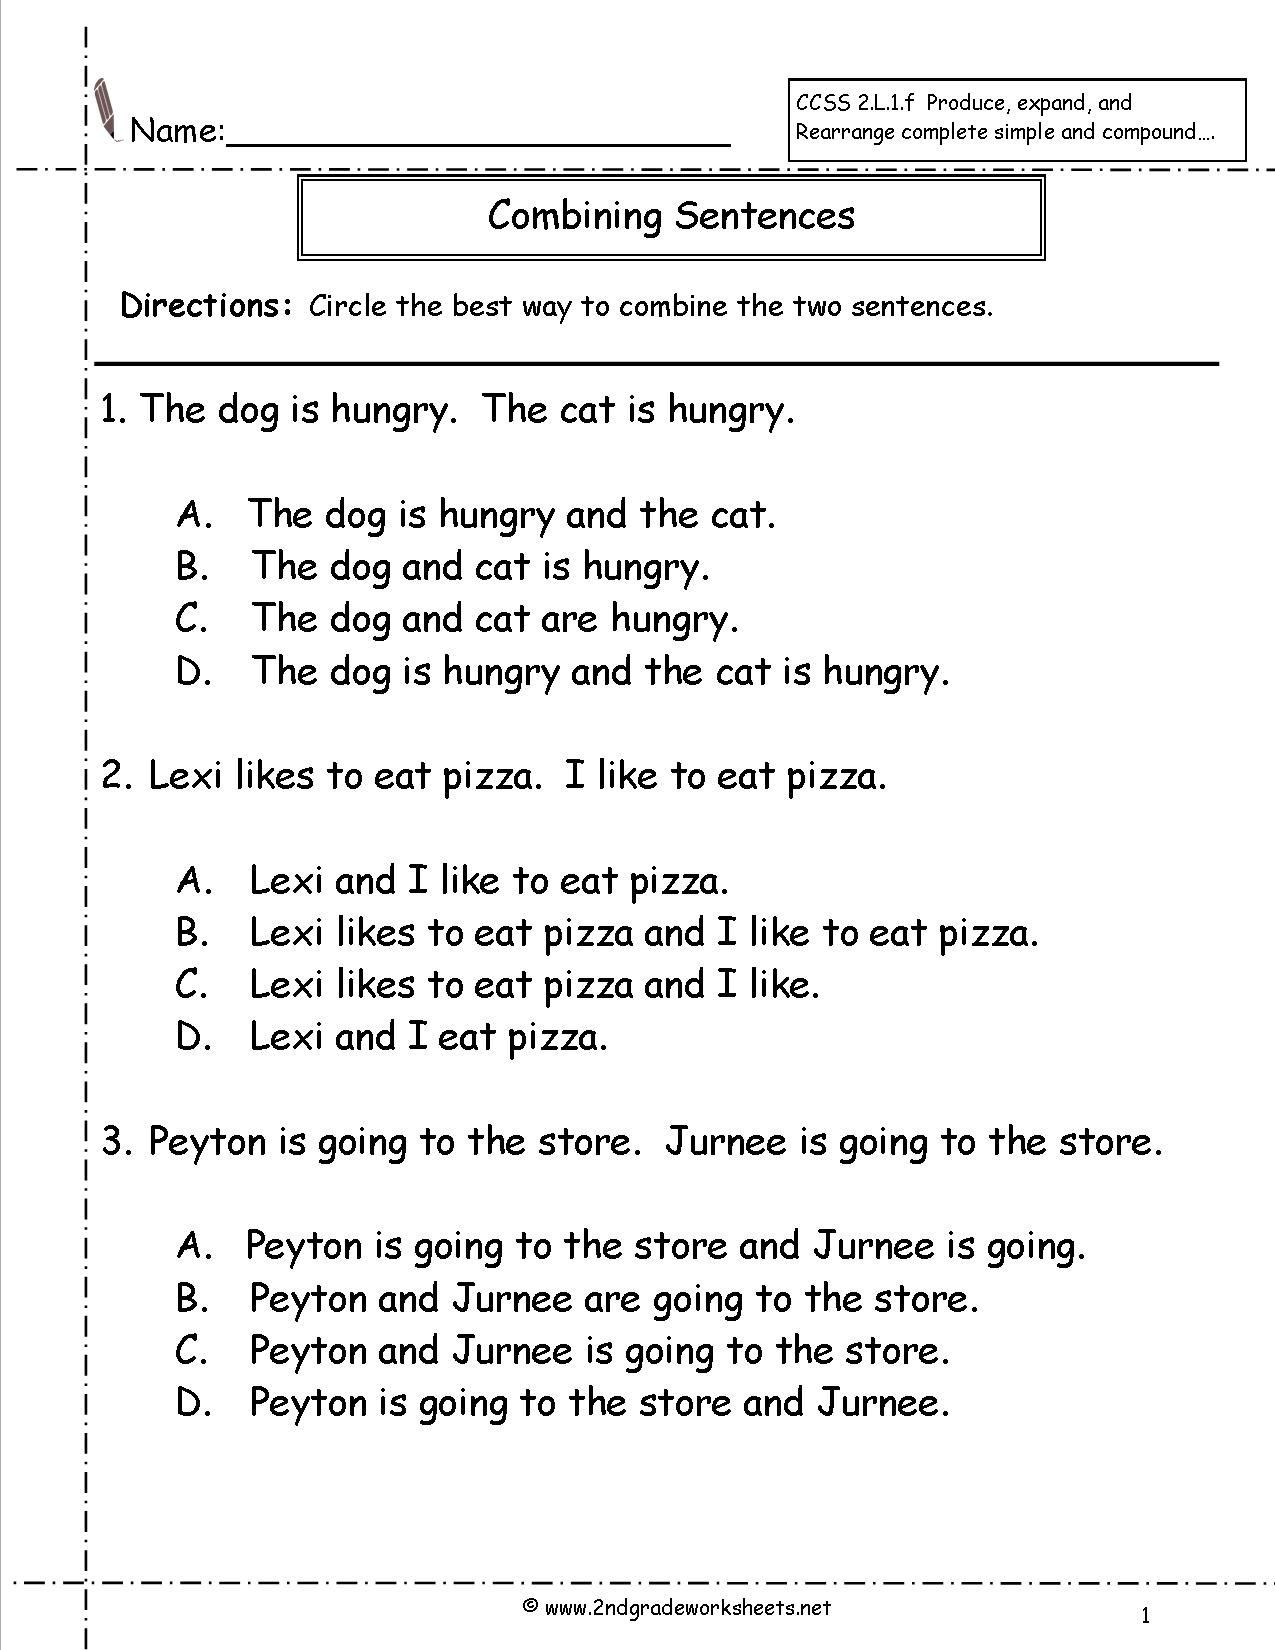 Complex Sentence Worksheets 4th Grade Bining Sentences Worksheet